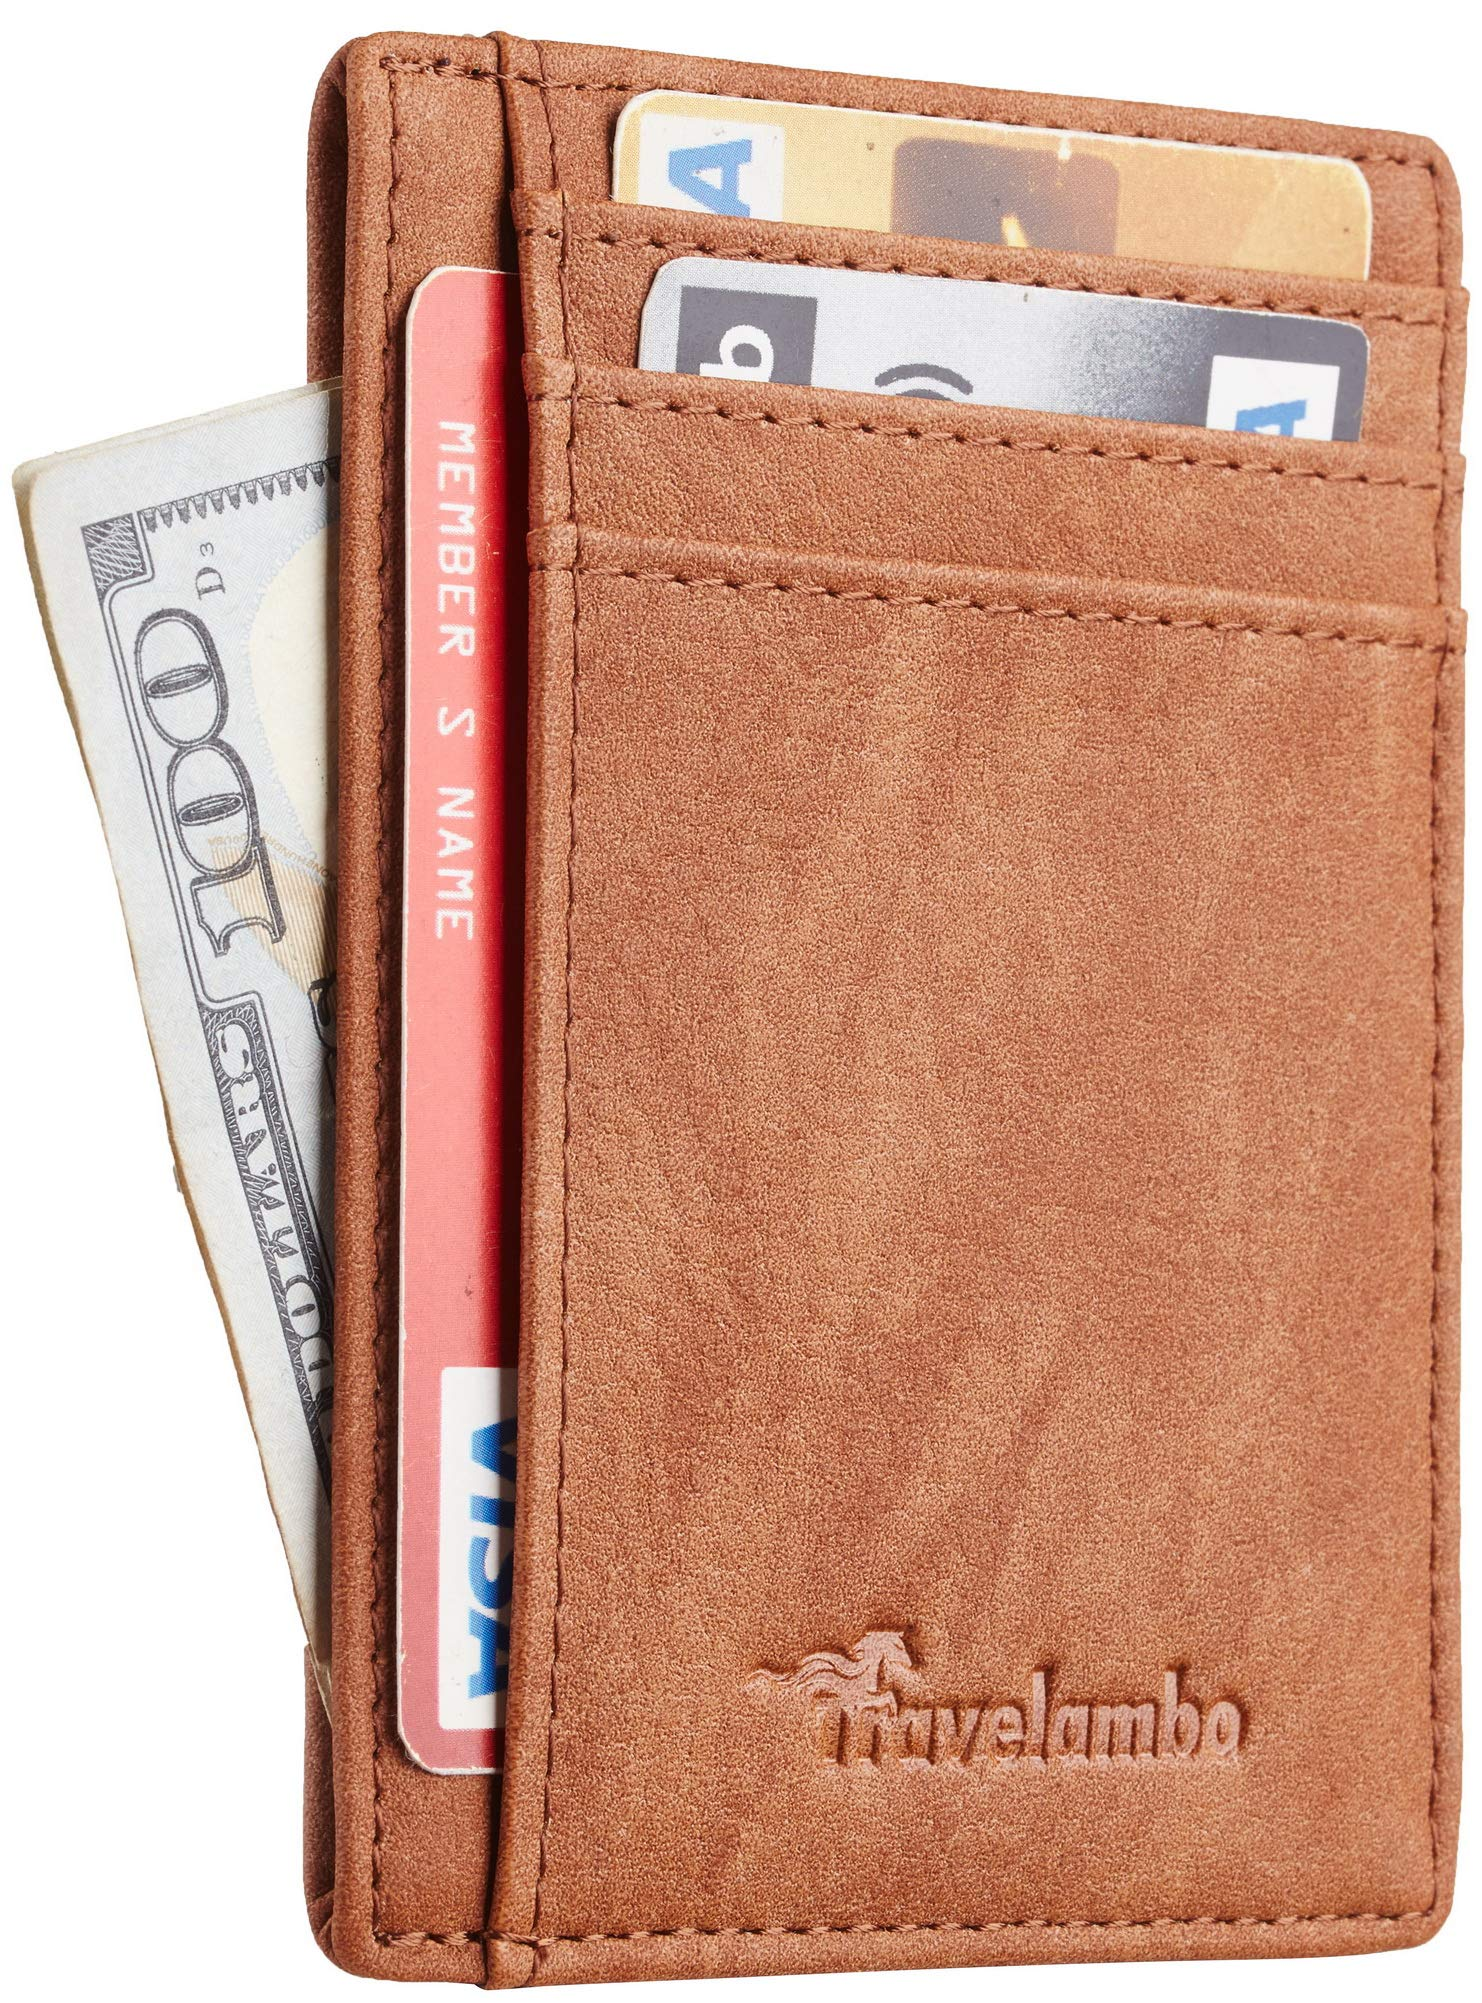 Travelambo Front Pocket Minimalist Leather Slim Wallet RFID Blocking Medium Size (Oldo Brown)